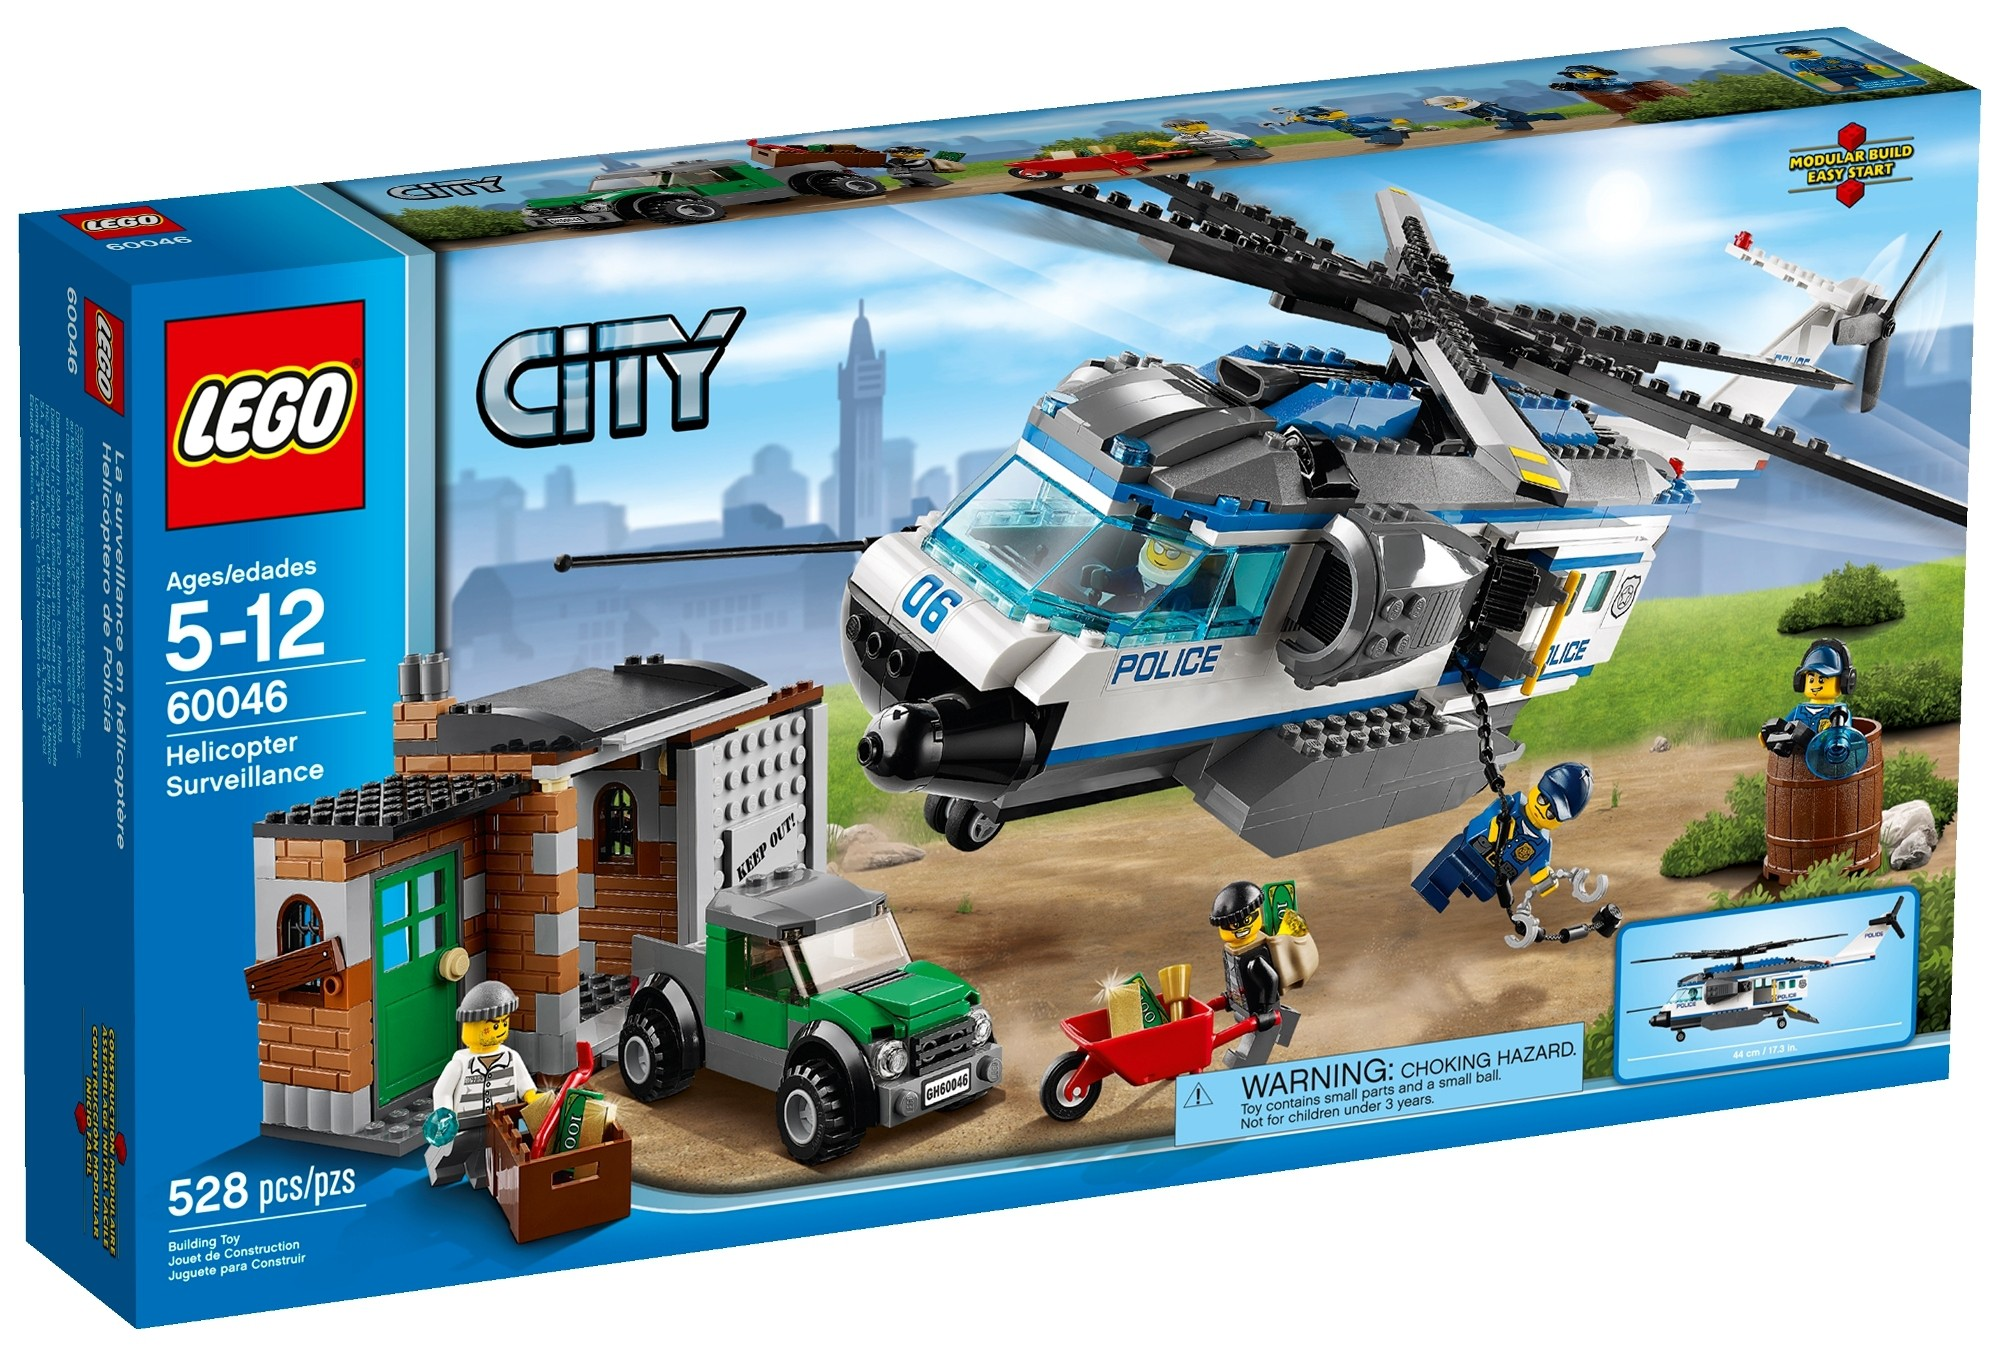 walmart remote control helicopter with 2014 Lego City Helicopter Surveillance 60046 Set Photos Preview on Robbers Wearing Thongs Masks 281597 in addition 2014 Lego City Helicopter Surveillance 60046 Set Photos Preview also Toys Remote Control Car moreover 6000192746936 besides 8 Free Router Lift Plans Build Notes And Videos.